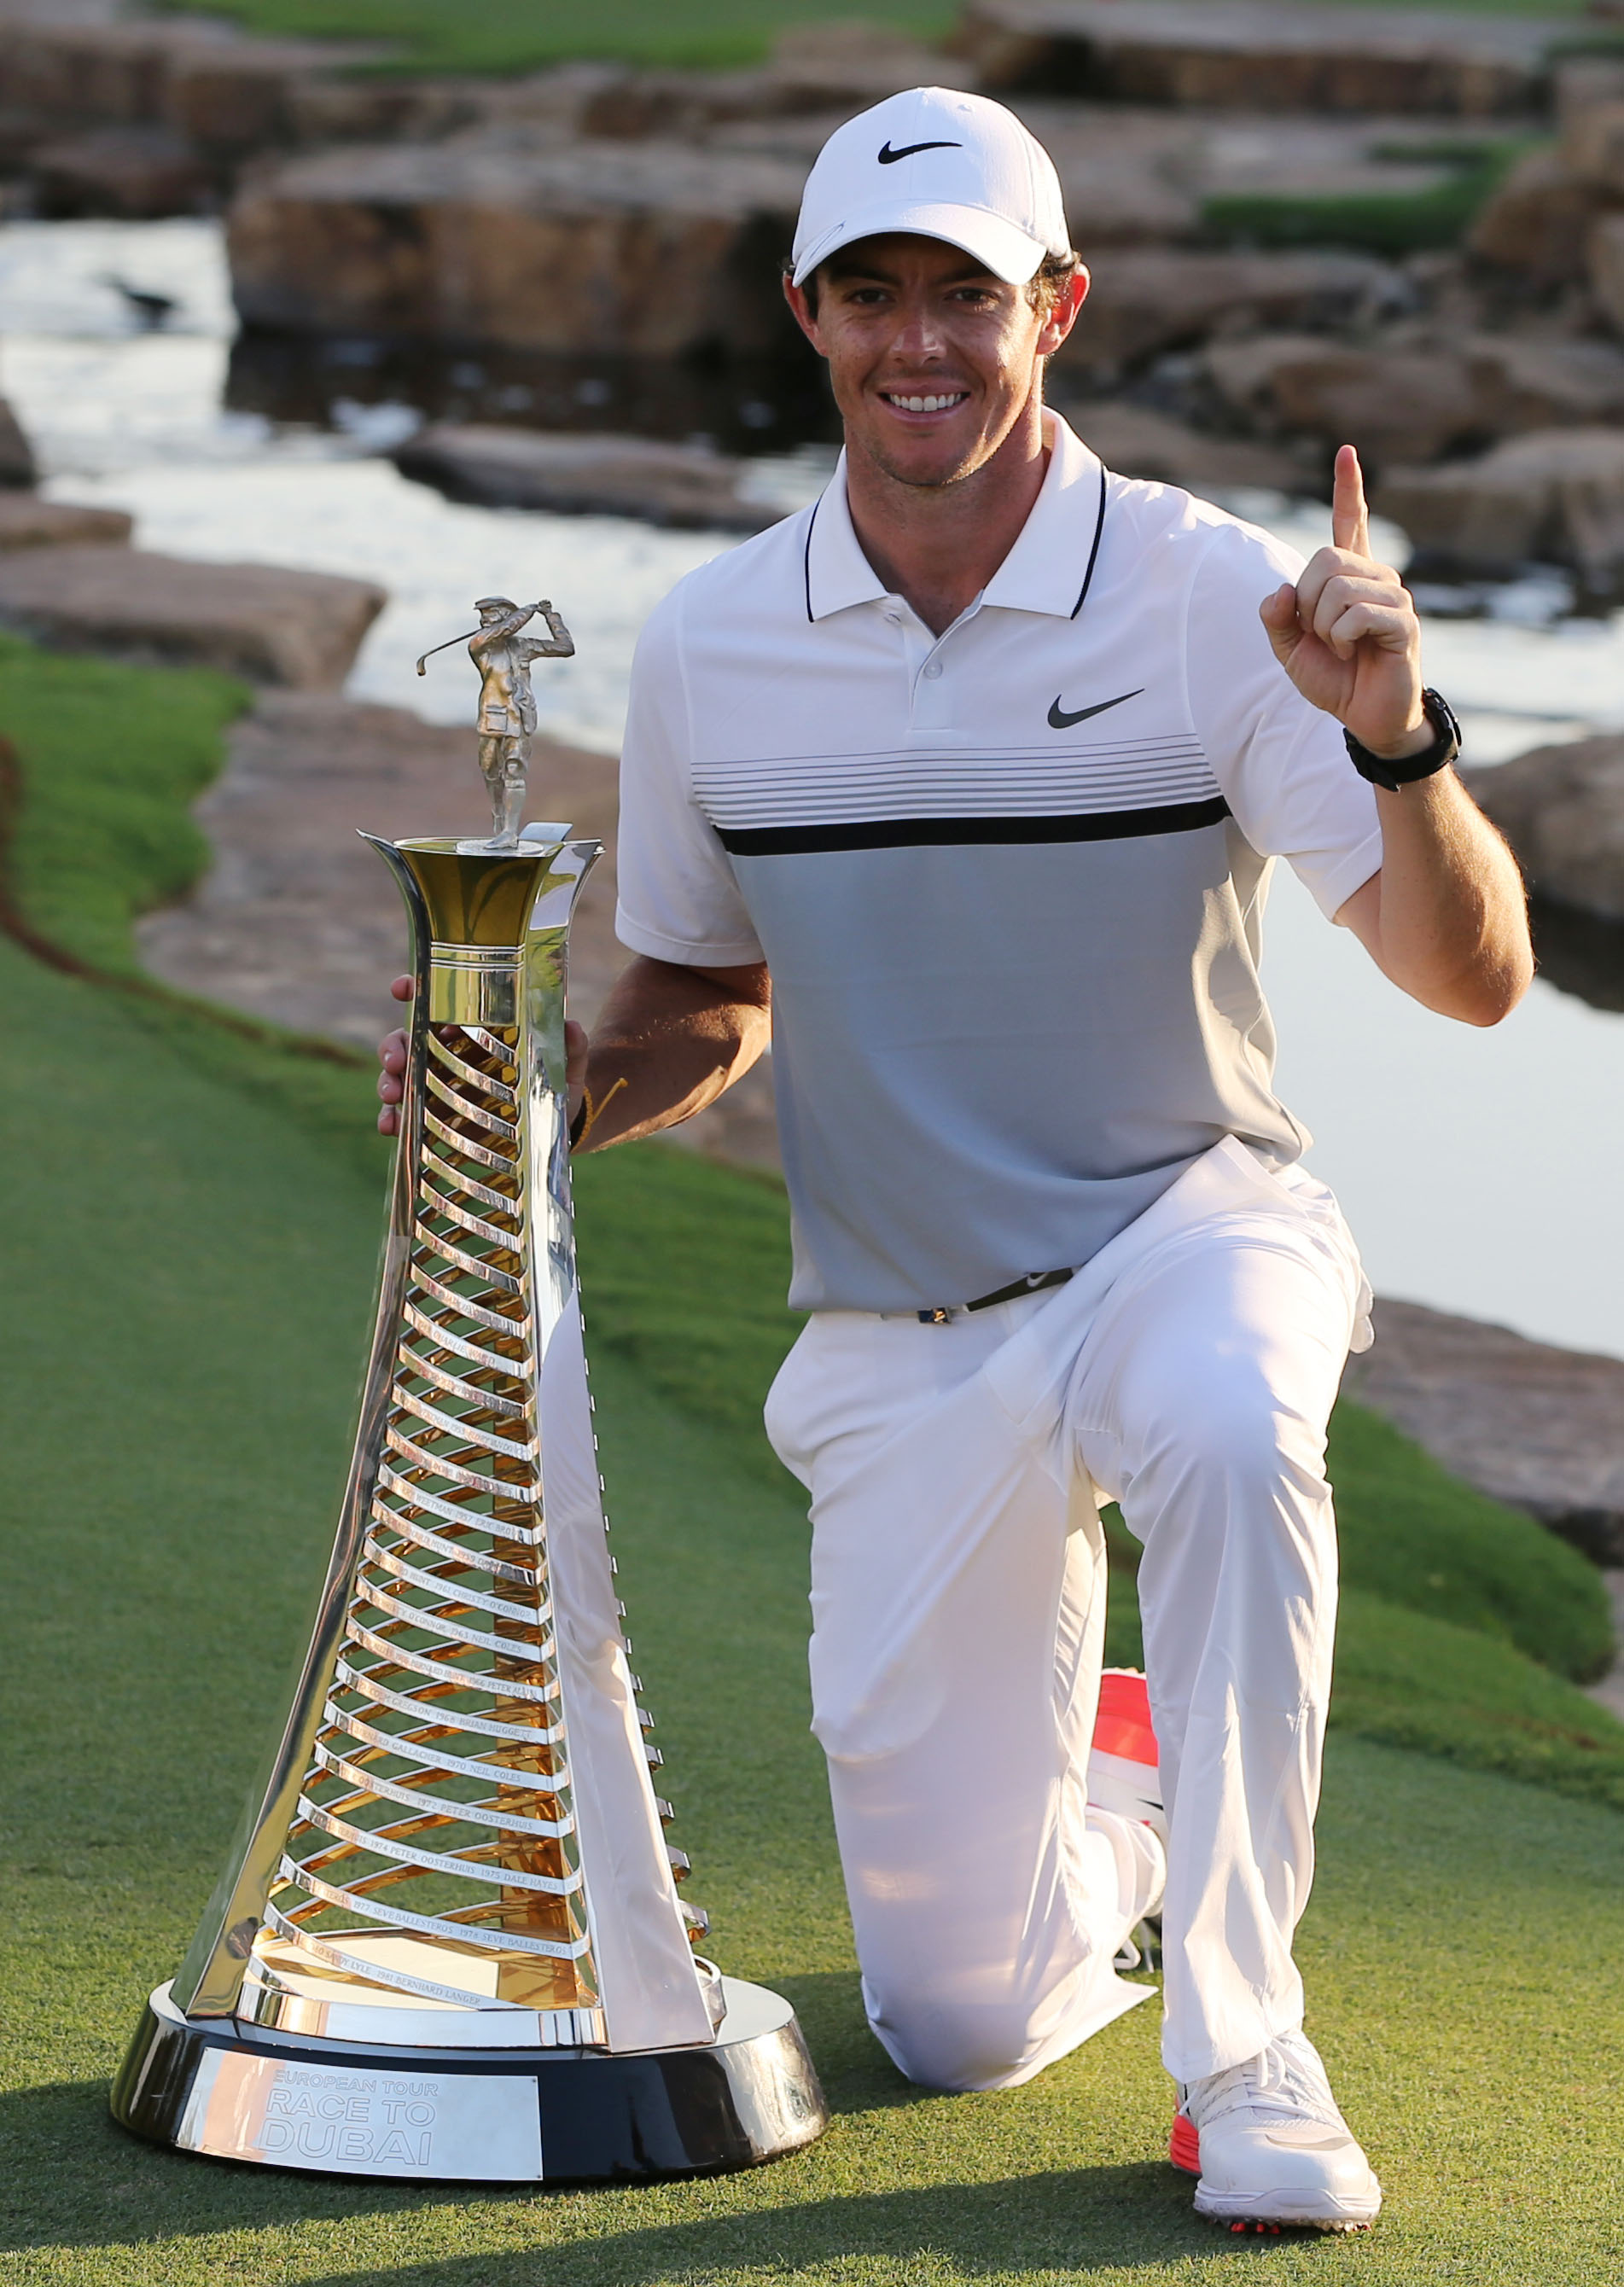 Rory McIlroy poses with the Race to Dubai trophy after winning the DP World Tour Championship.